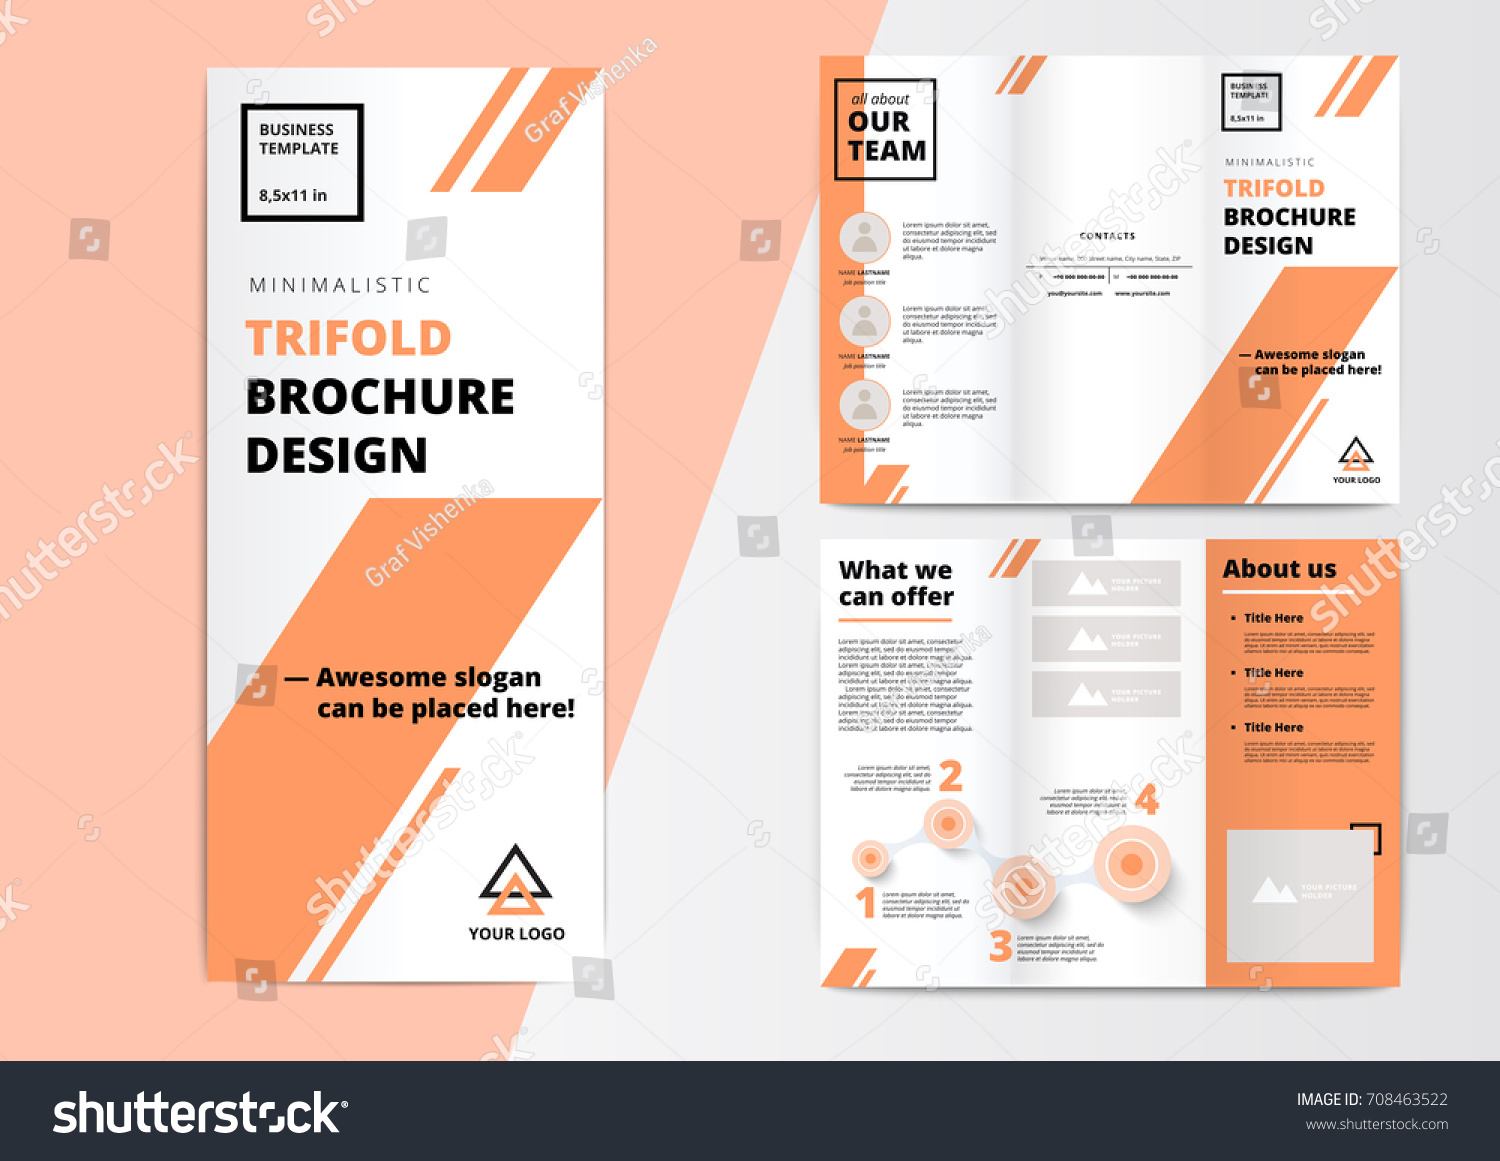 Corporate presentation trifold brochure design creative stock vector corporate presentation trifold brochure design creative business proposal or annual report vector flyer template flashek